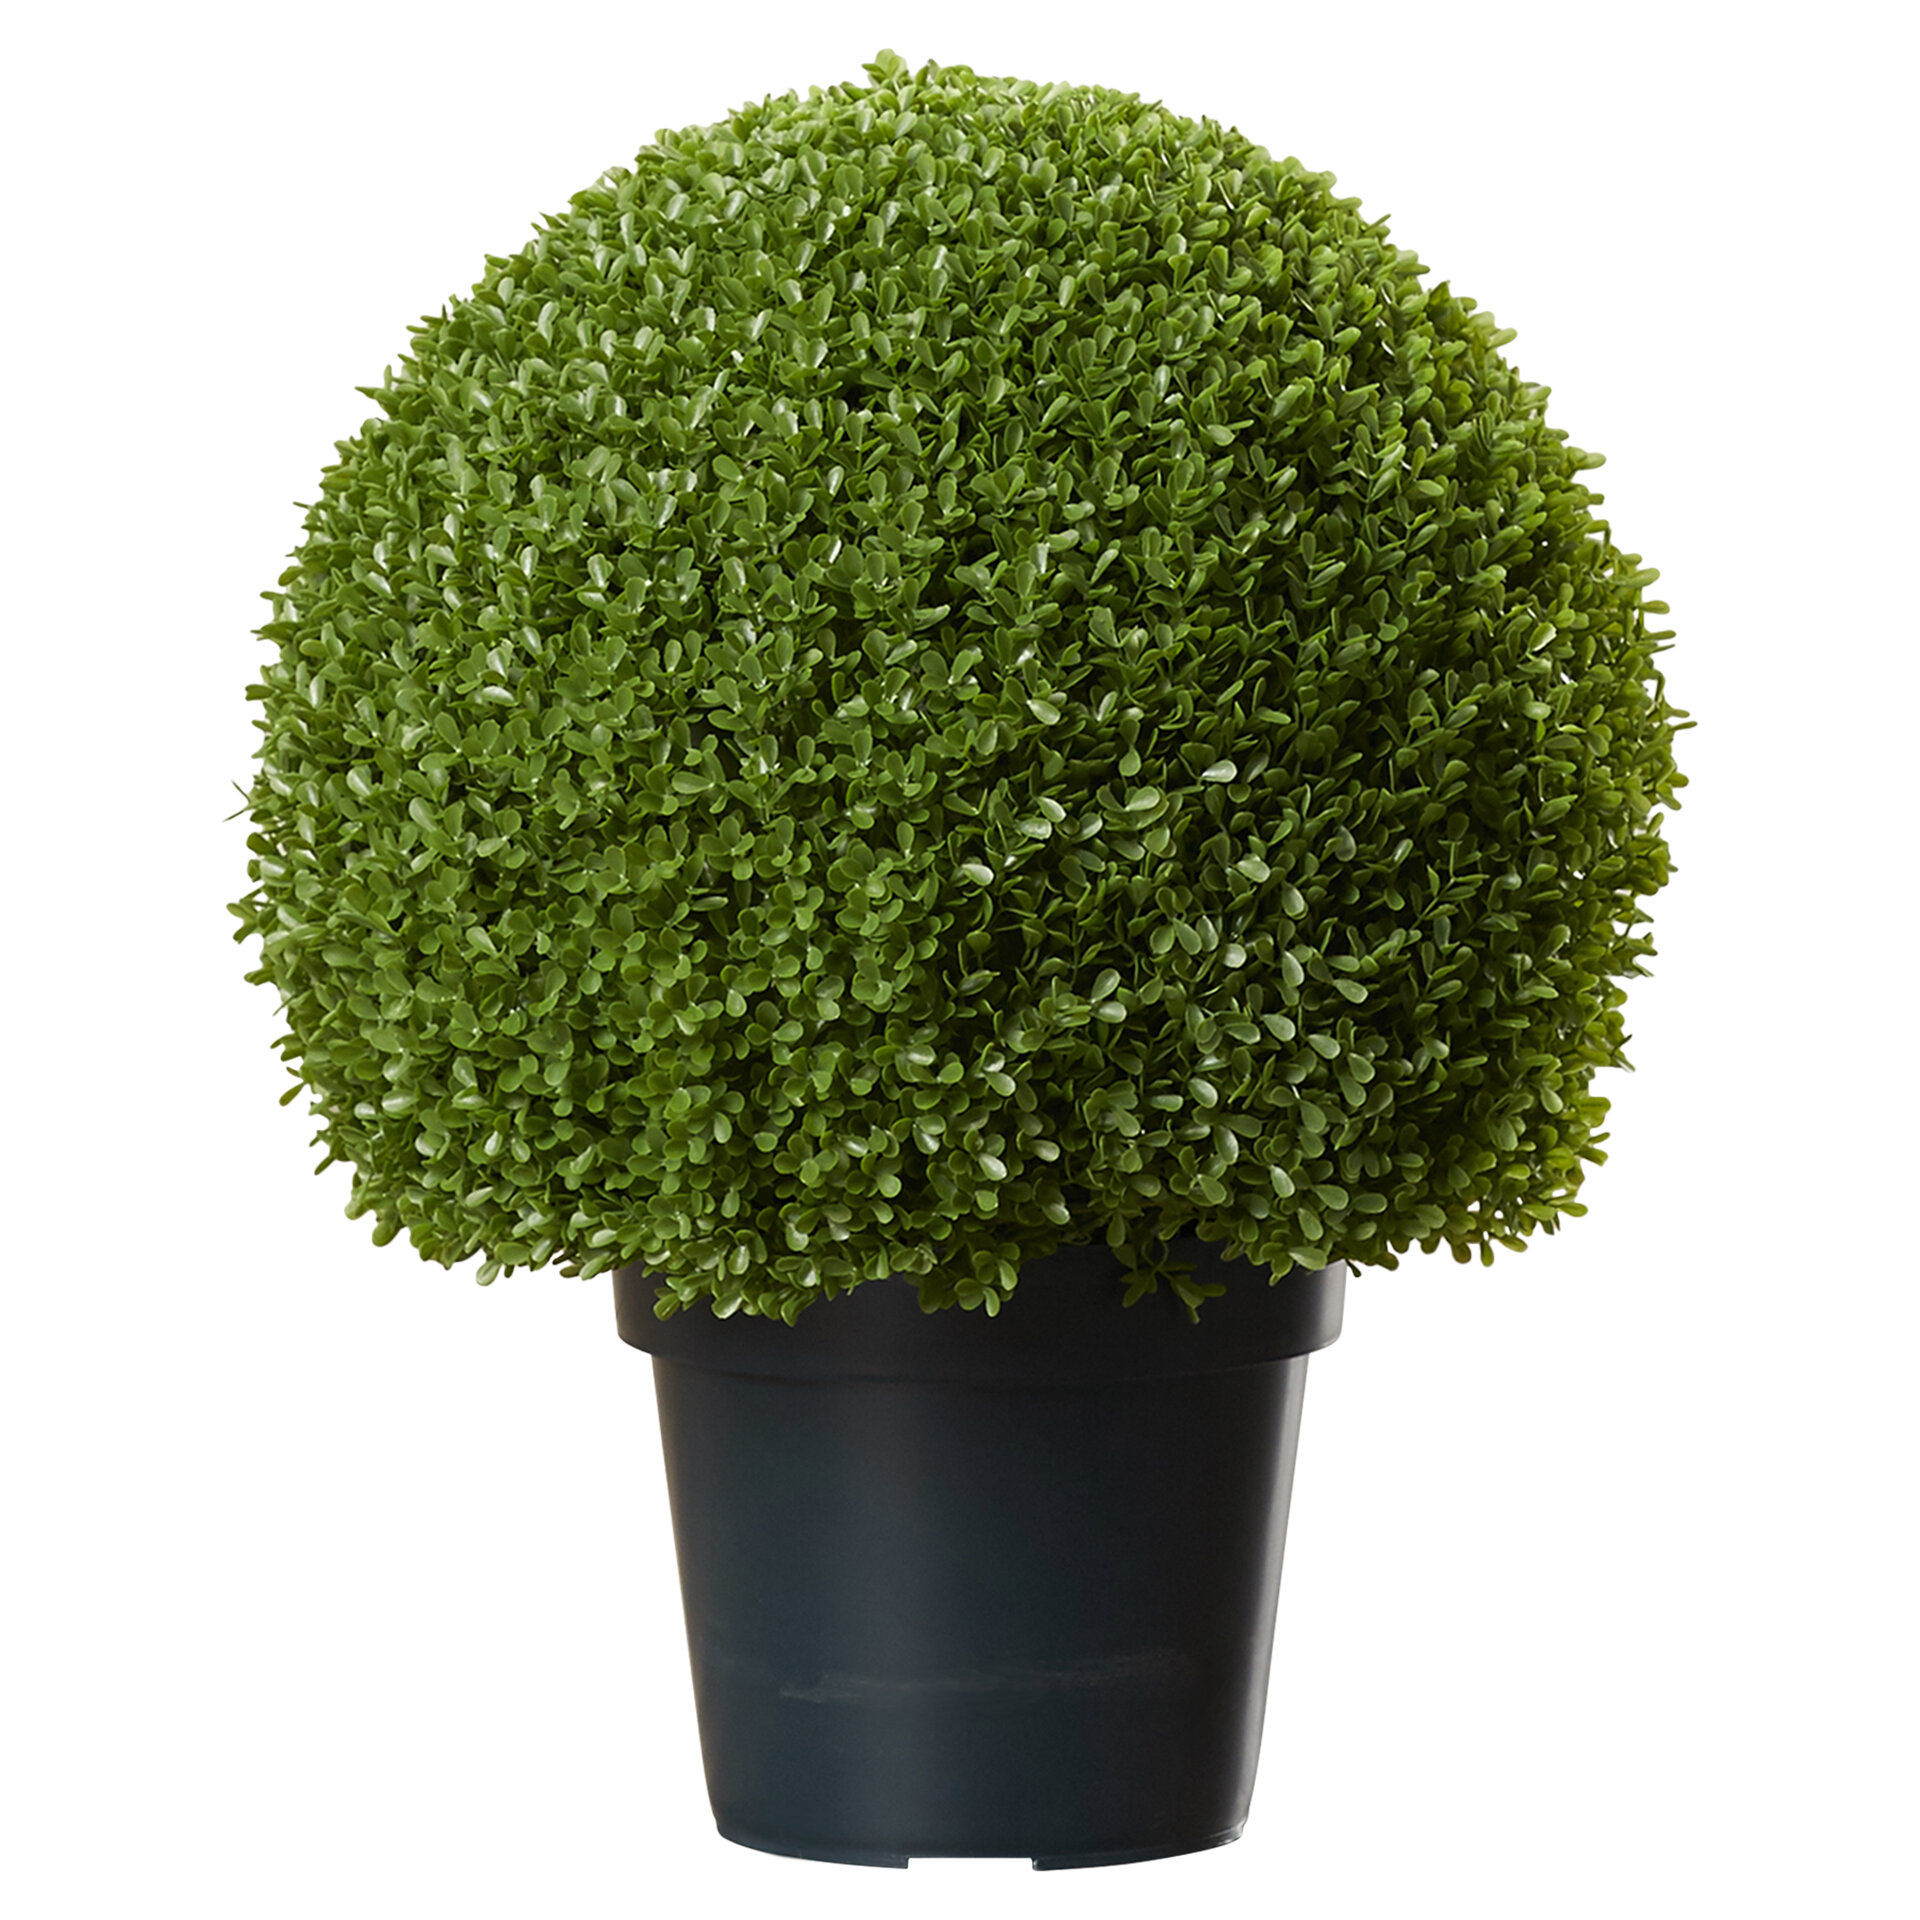 13 Round Artificial Boxwood Topiary In Pot Reviews Birch Lane